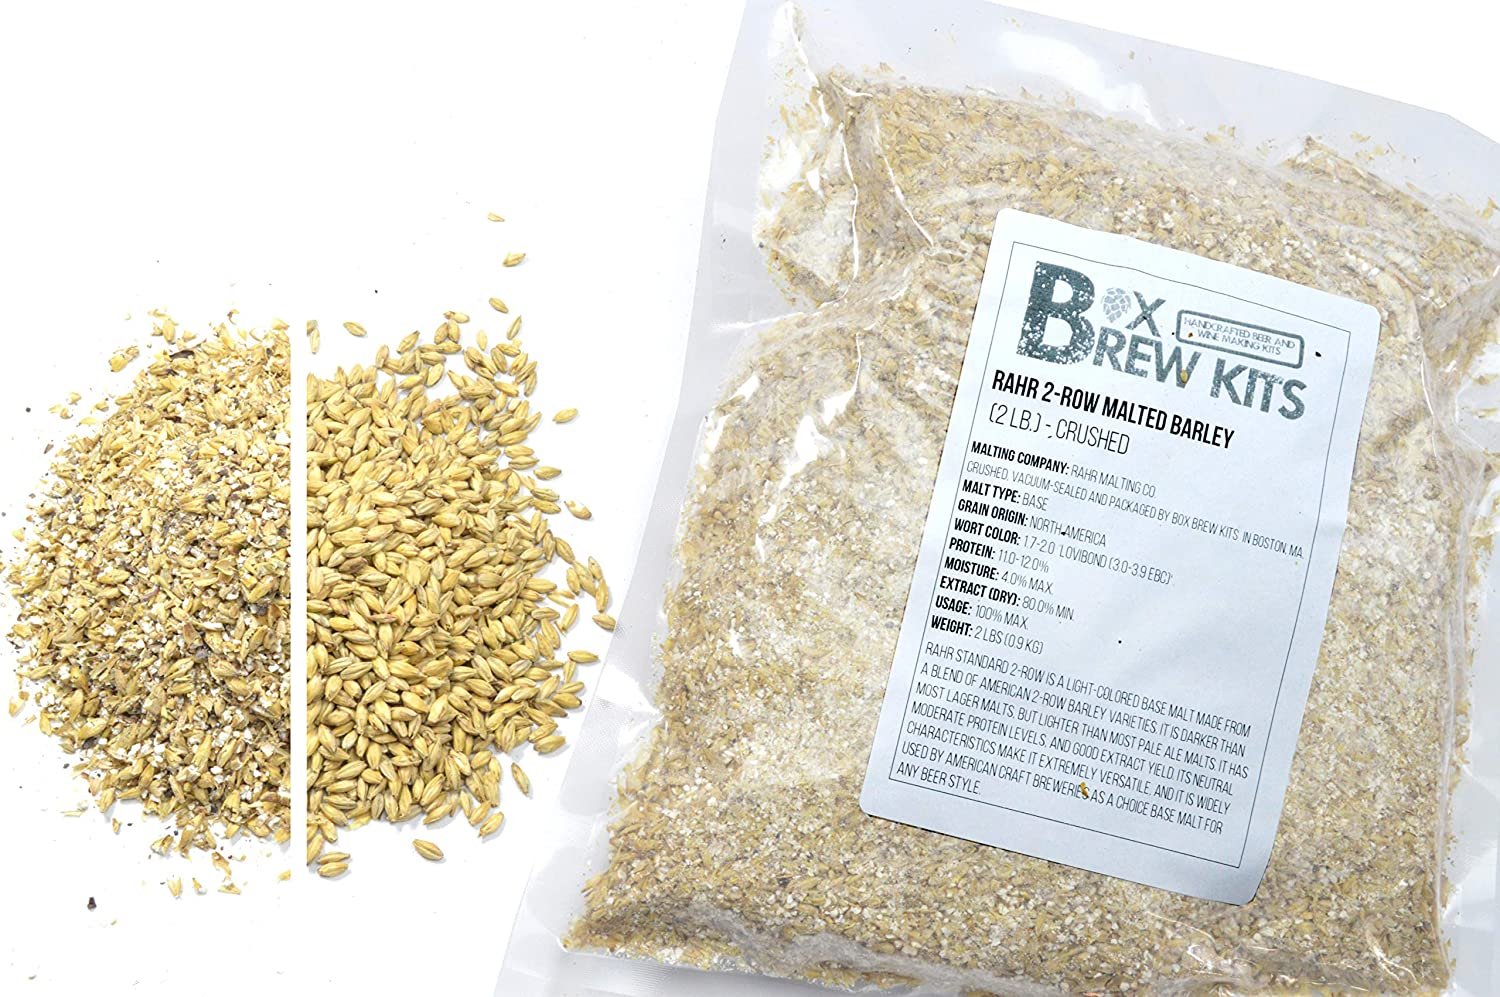 B076L17CW9 RAHR 2-Row Malted Barley 2 LBS CRUSHED Home Brewing Beer Making Recipe Ingredients Vacuum Sealed 1 Gallon Small Batch 913m5LyD0fL